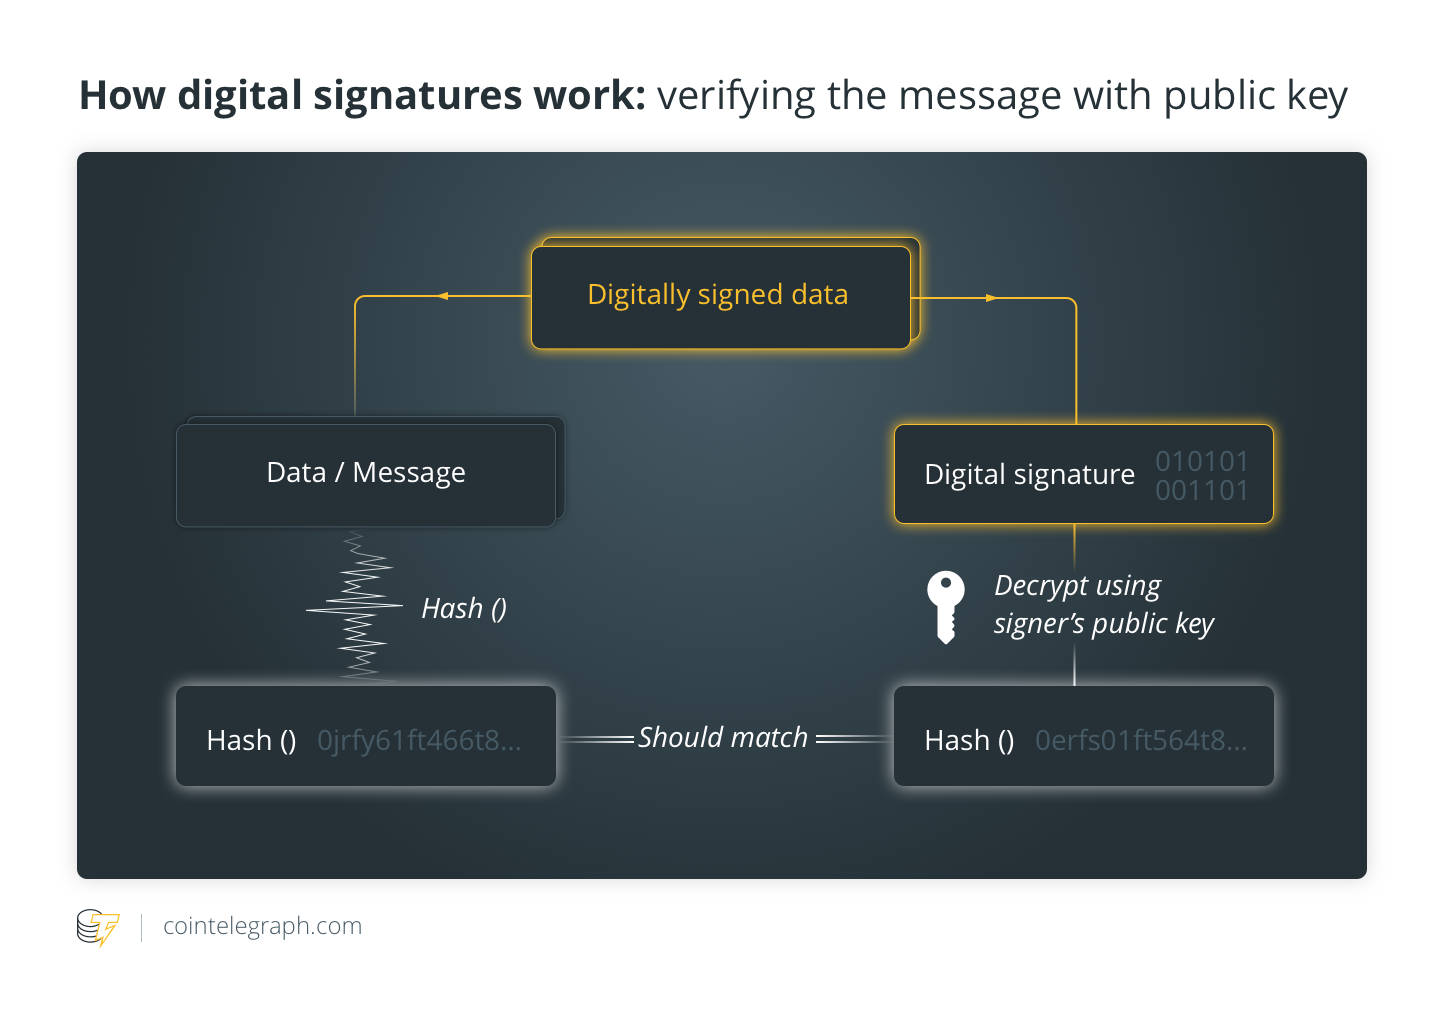 verifying the message with public key